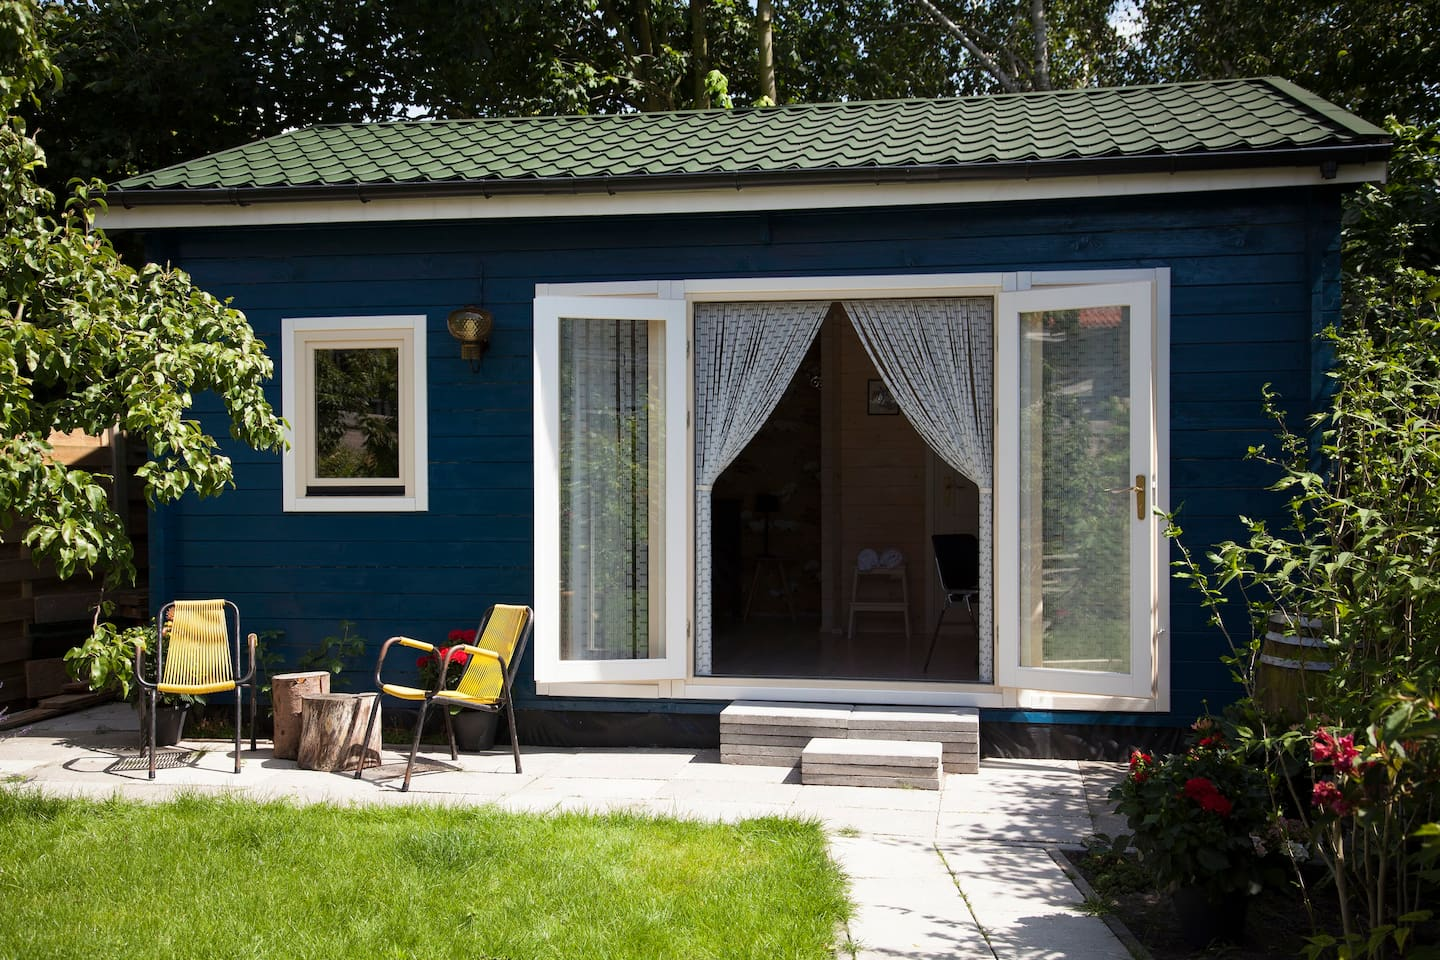 De top 20 bungalows om te huren in amsterdam   airbnb: bungalow ...